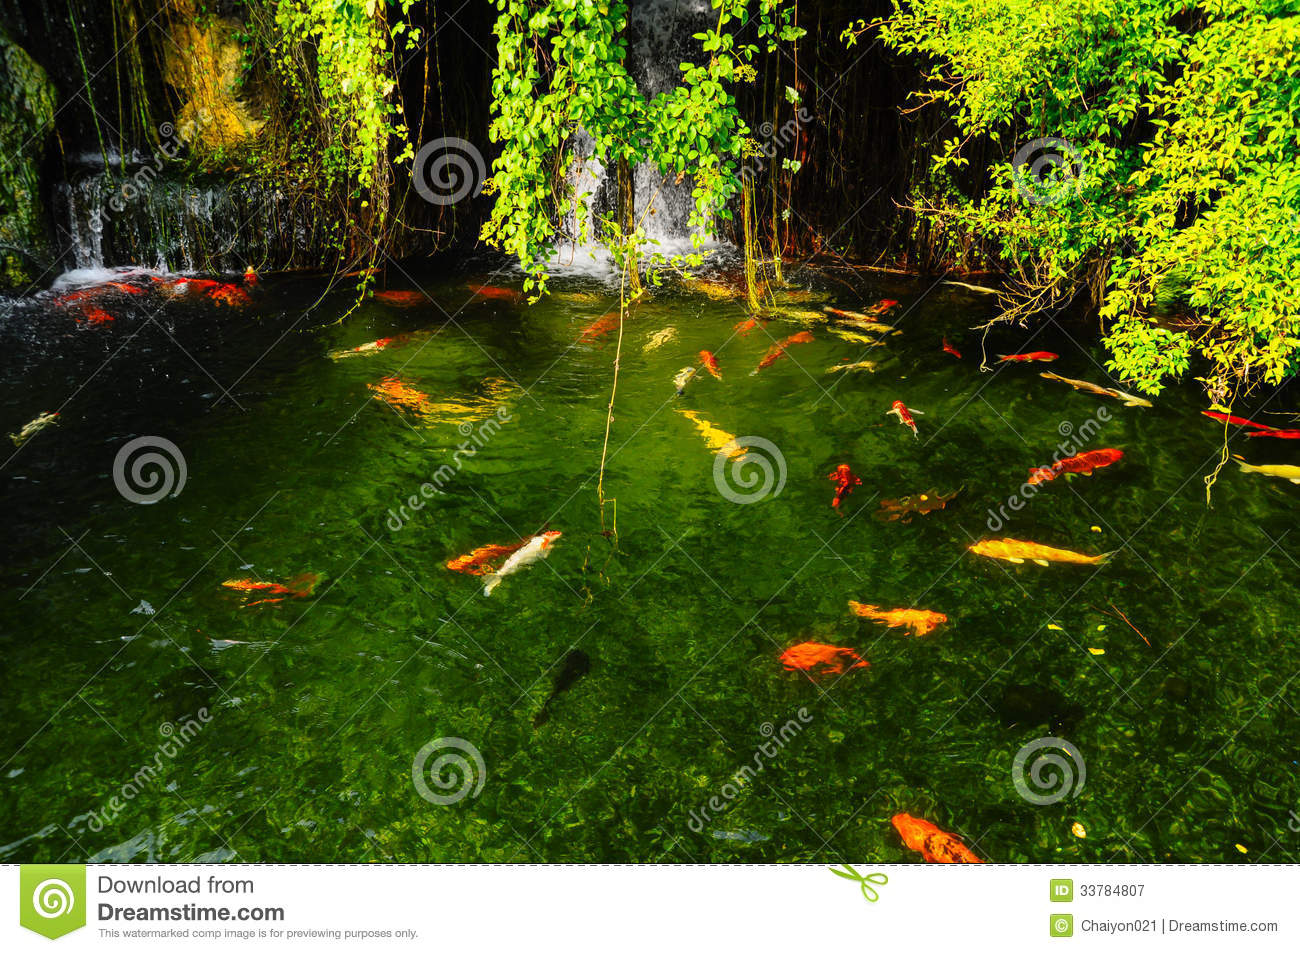 Koi fish in pond royalty free stock photography image for Garden pond design software free download